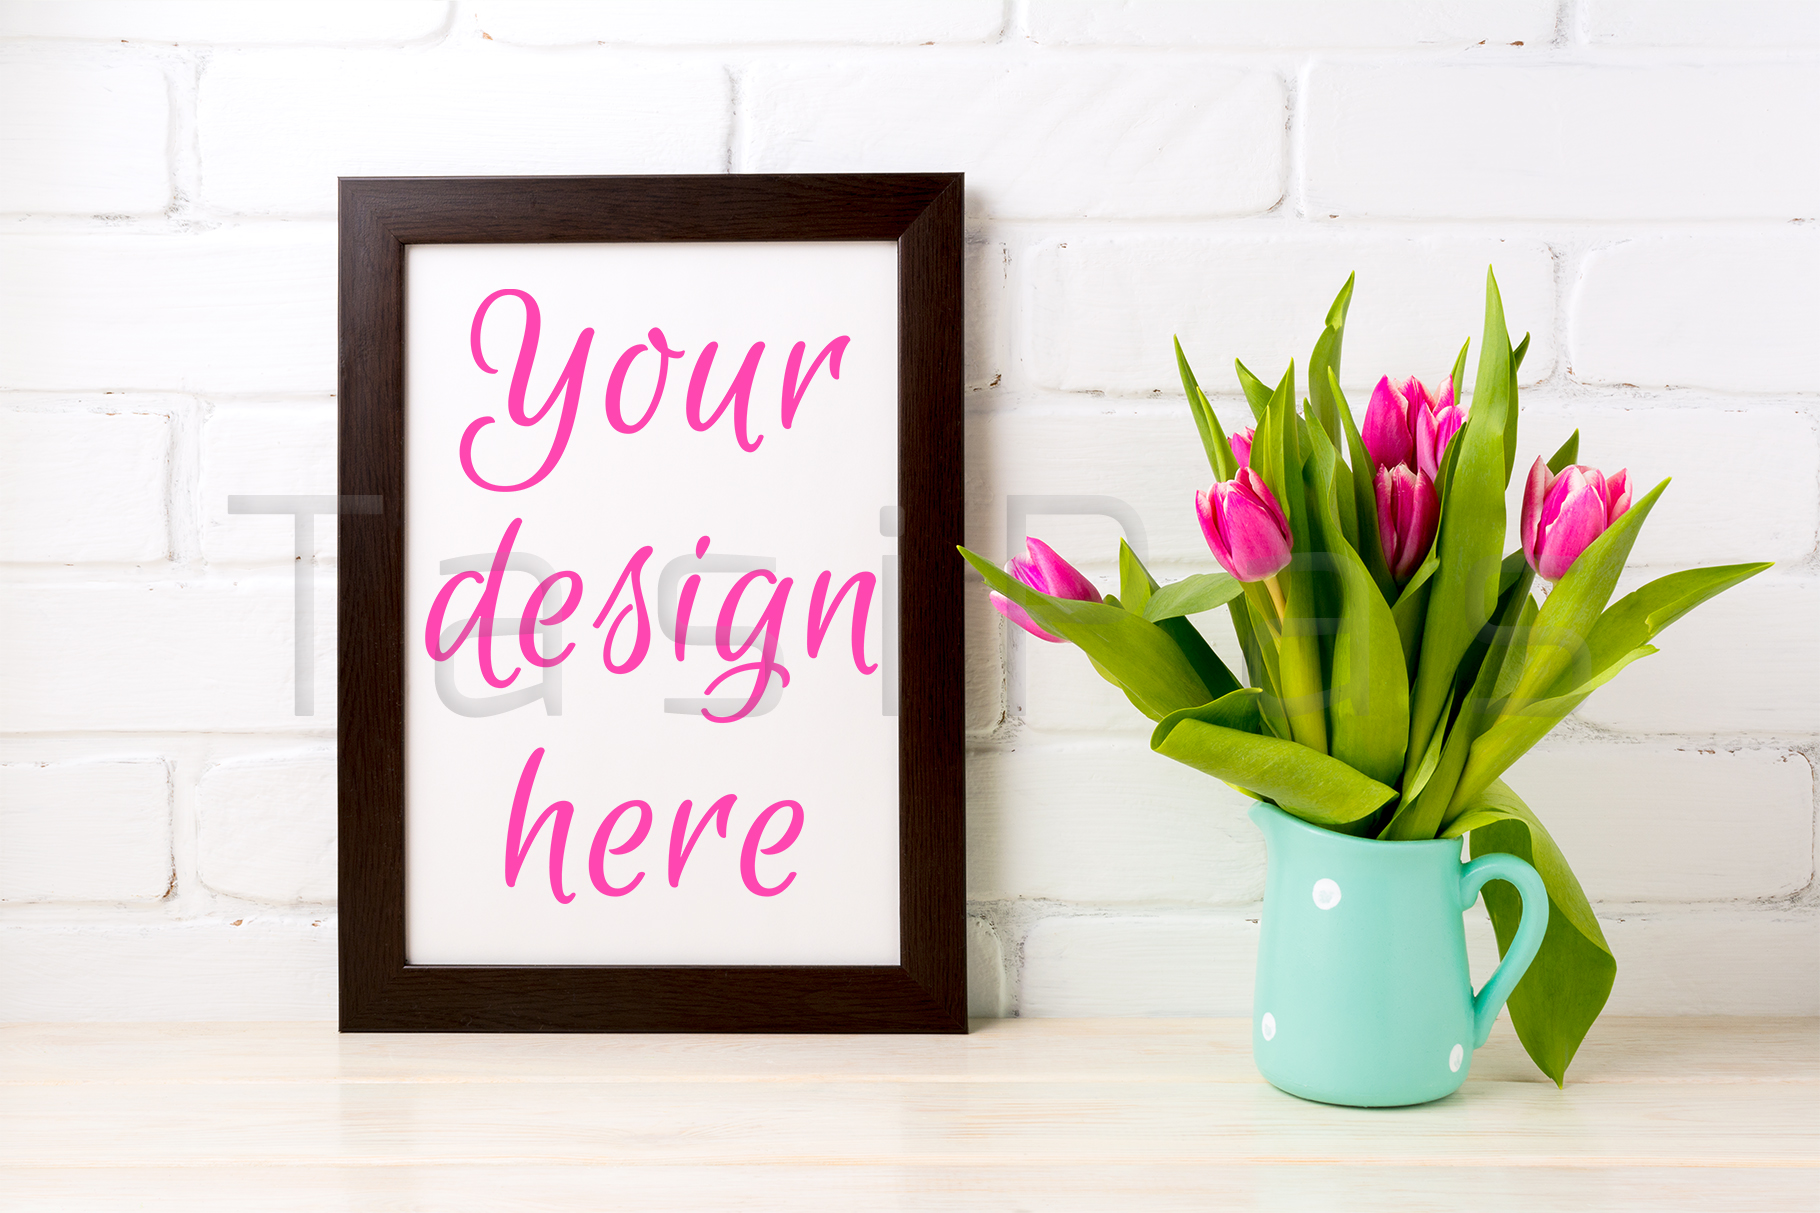 Black brown frame mockup with bright pink tulips bouquet example image 1